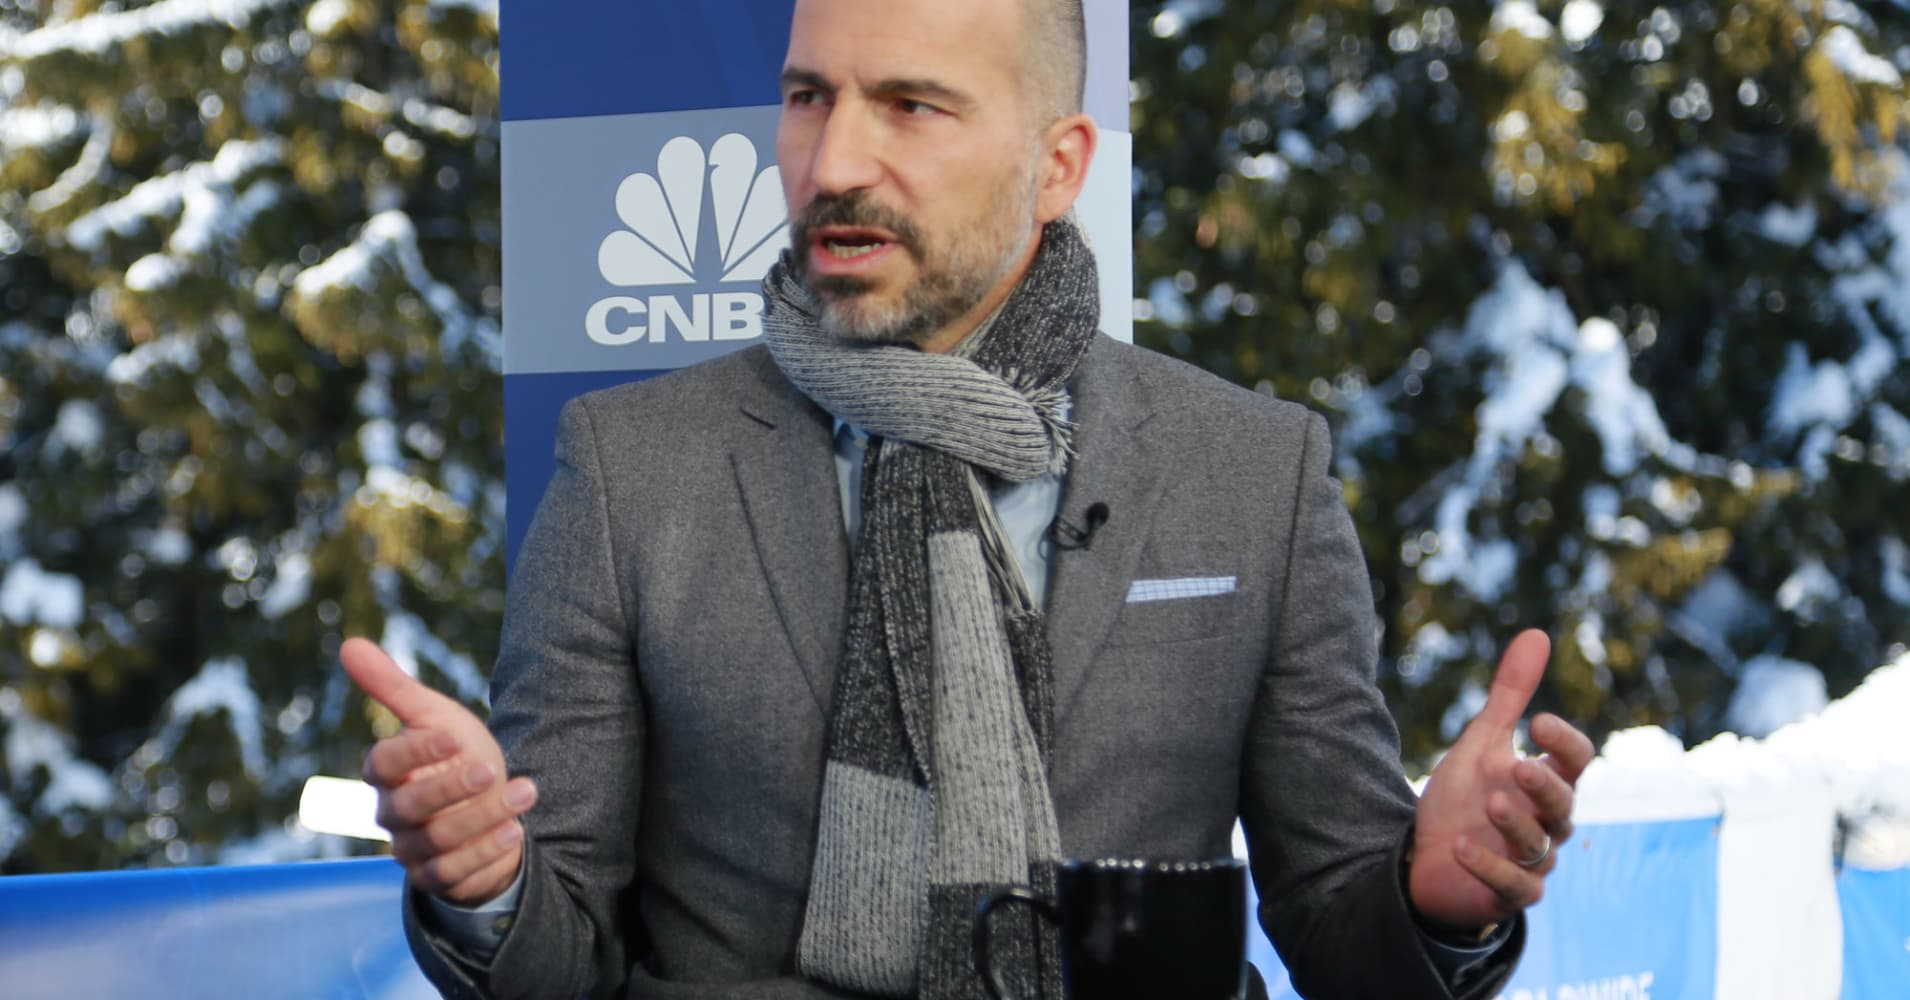 Uber CEO just gave a big (obvious) clue on how to get a great rating on Uber